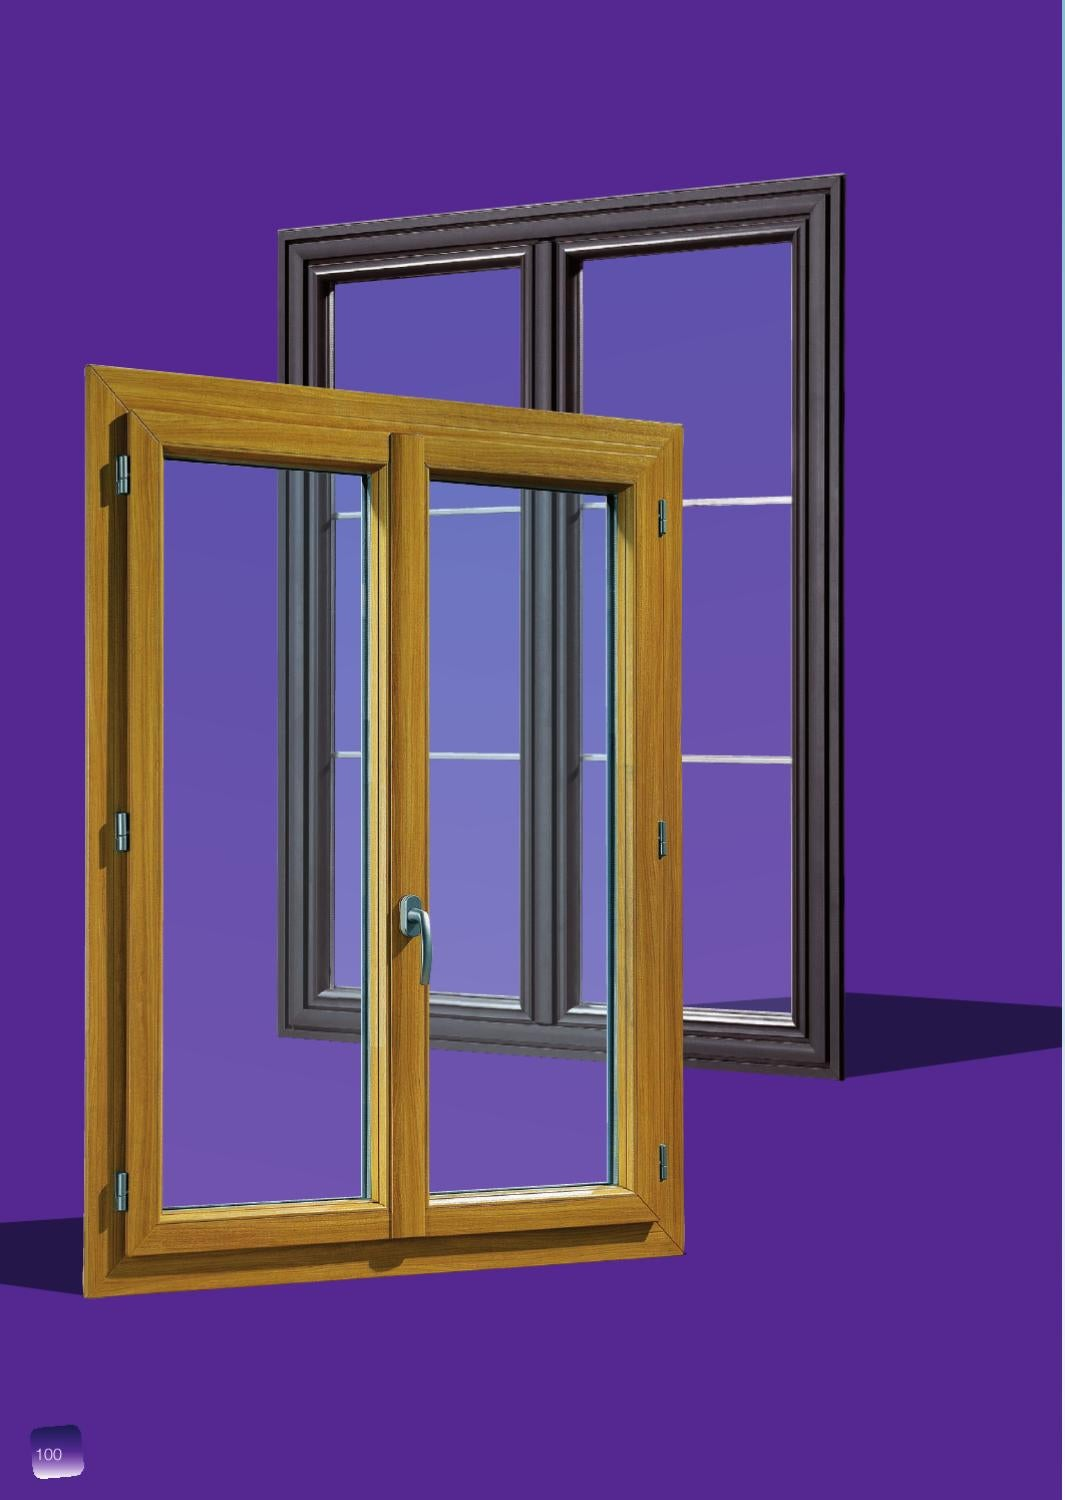 Fenetres alu et pvc prefal by prefal issuu for Moulure pvc fenetre